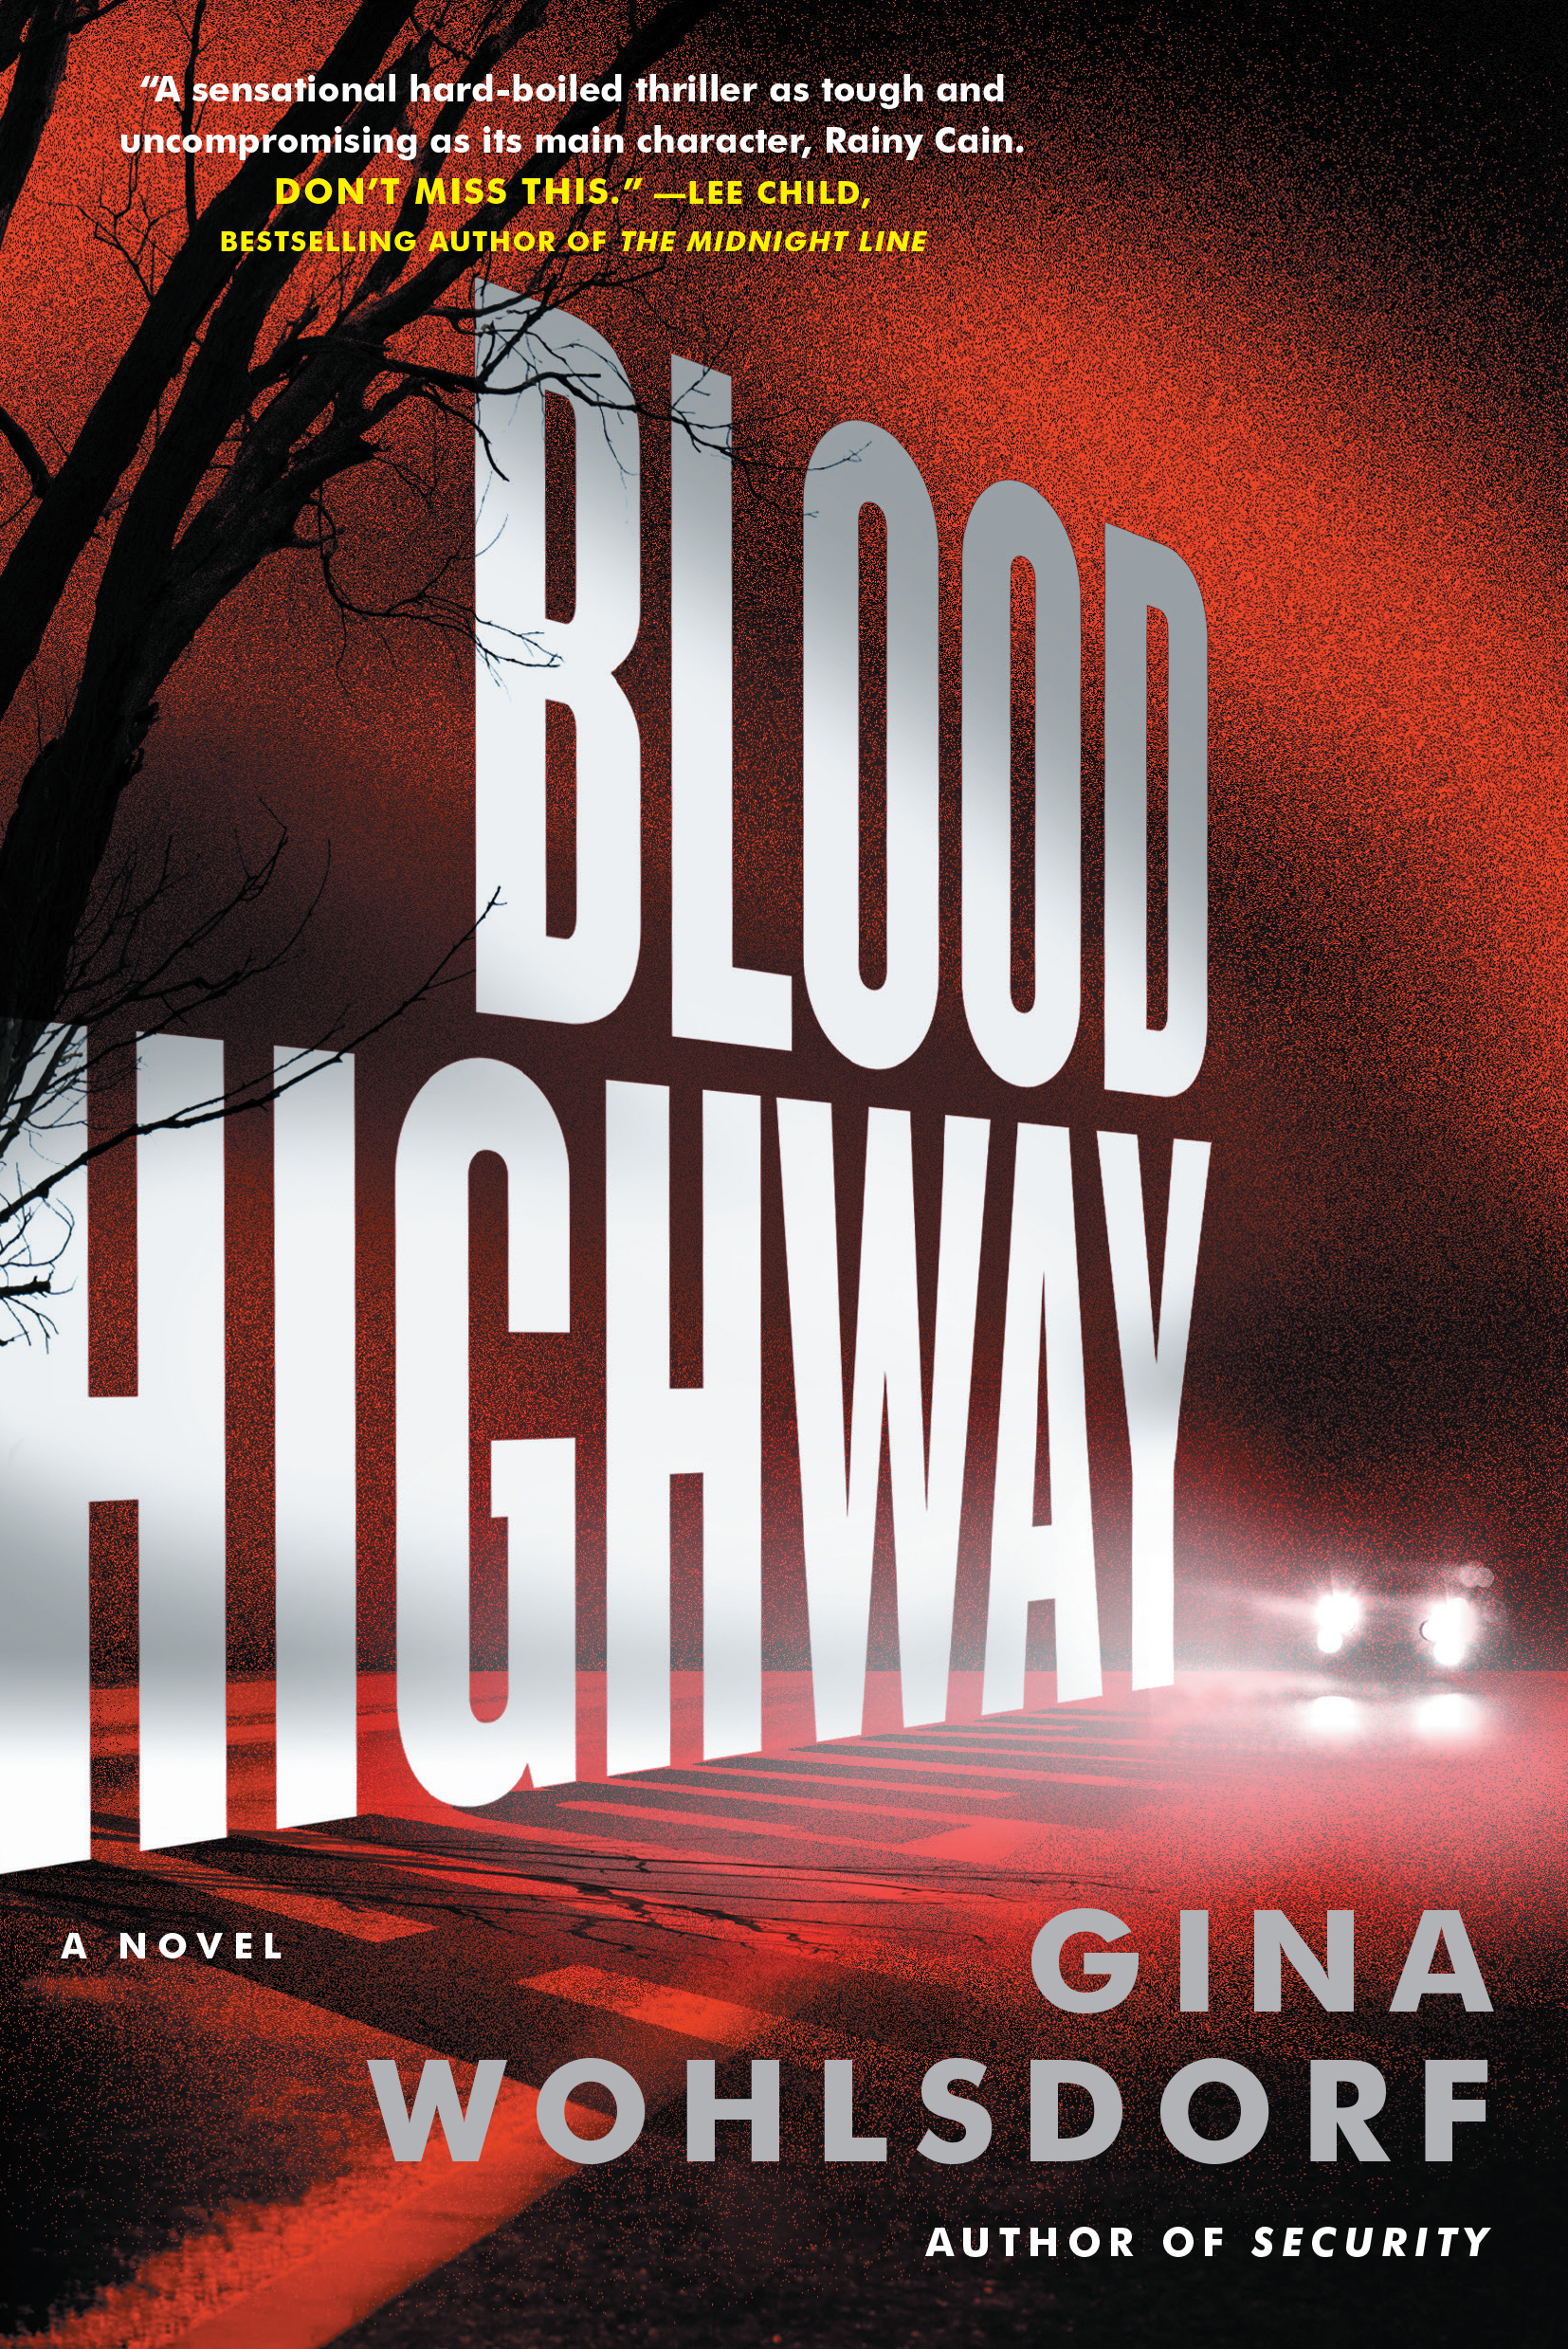 BLOOD HIGHWAY by Gina Wohlsdorf (Cover)